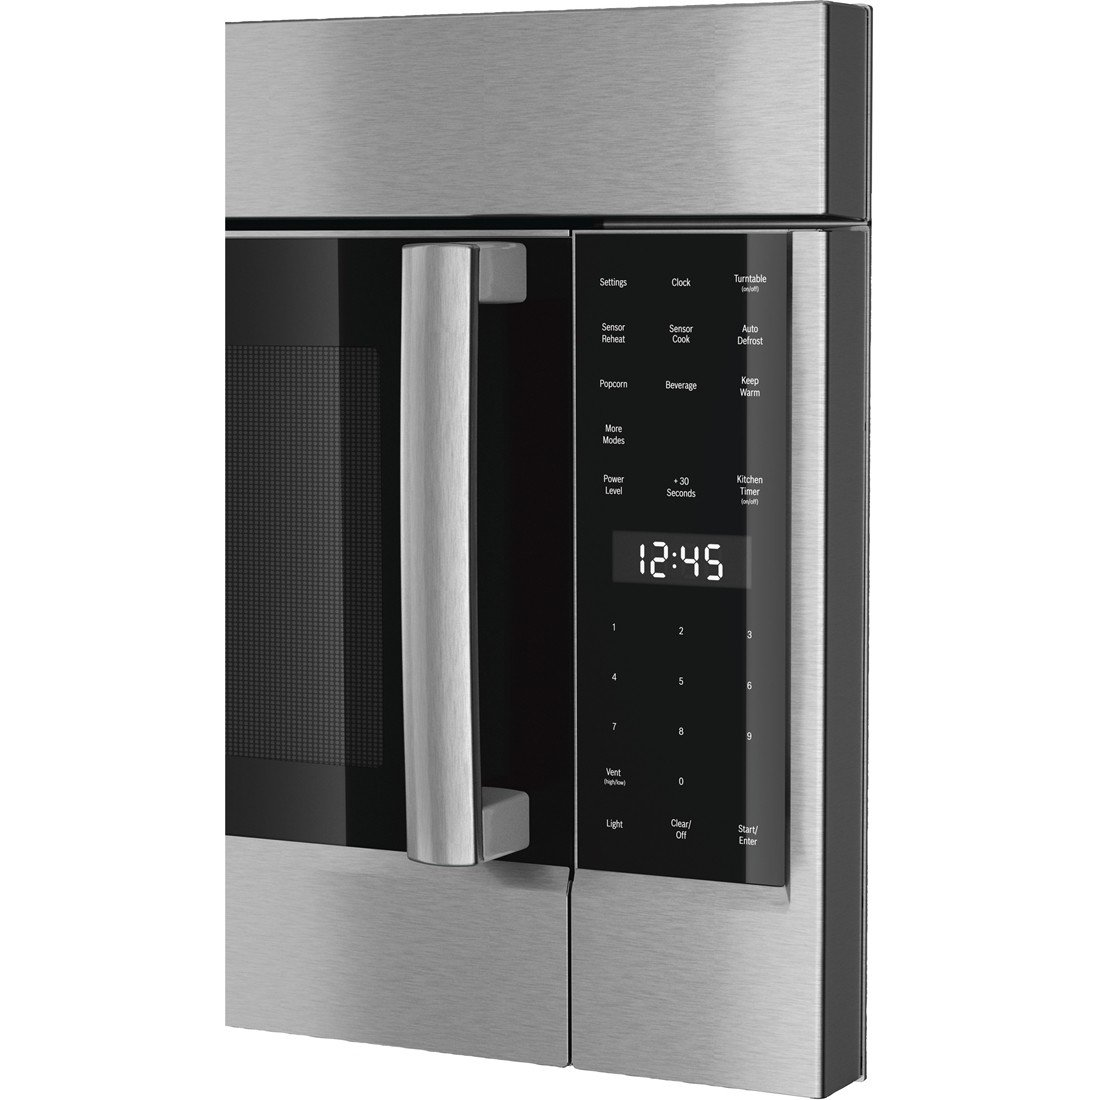 Amazon.com: Bosch hmv5052u 500 2.1 CU. FT. Acero inoxidable ...